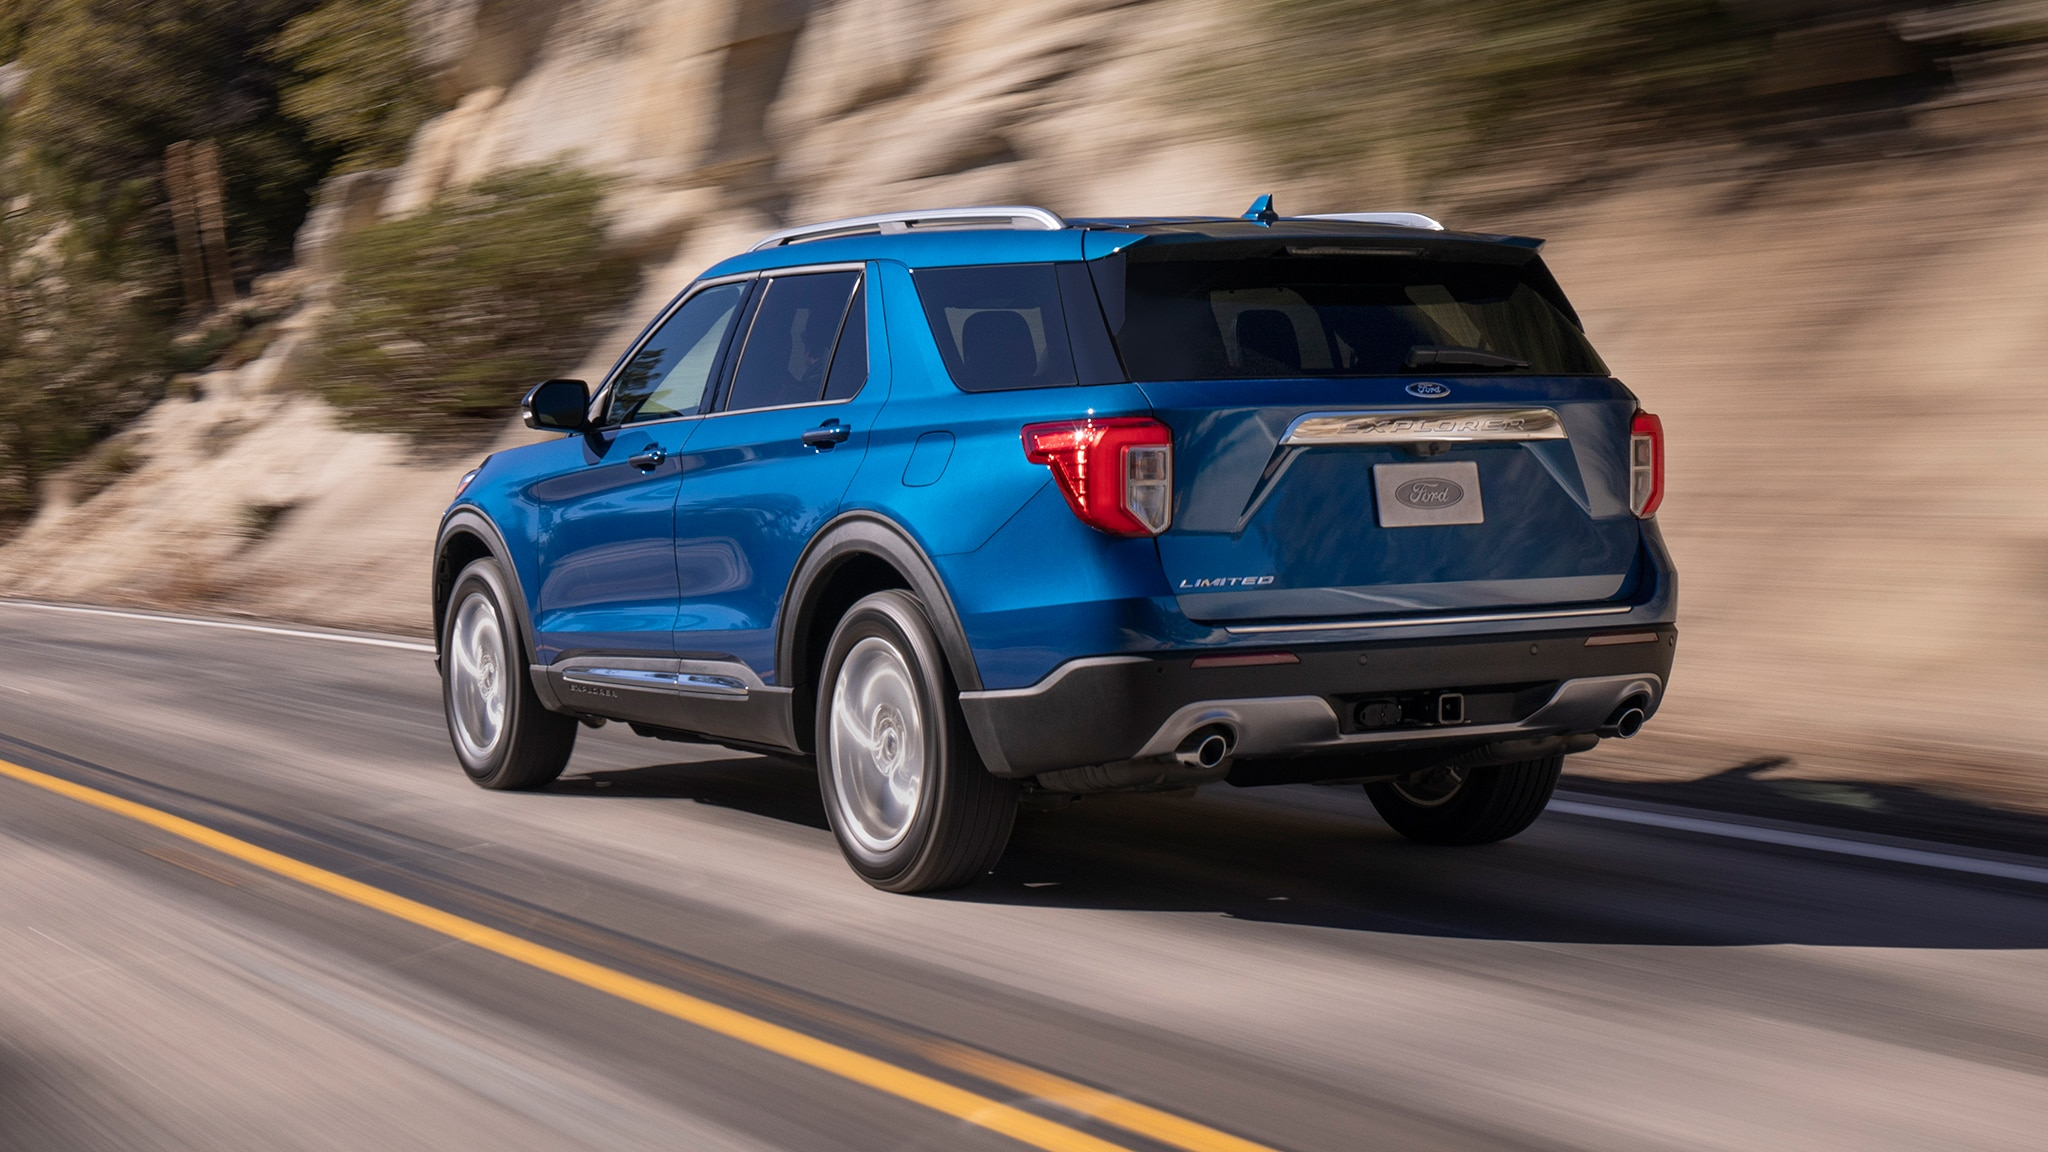 Ford Explorer revealed: Sleeker, stronger, loaded with tech